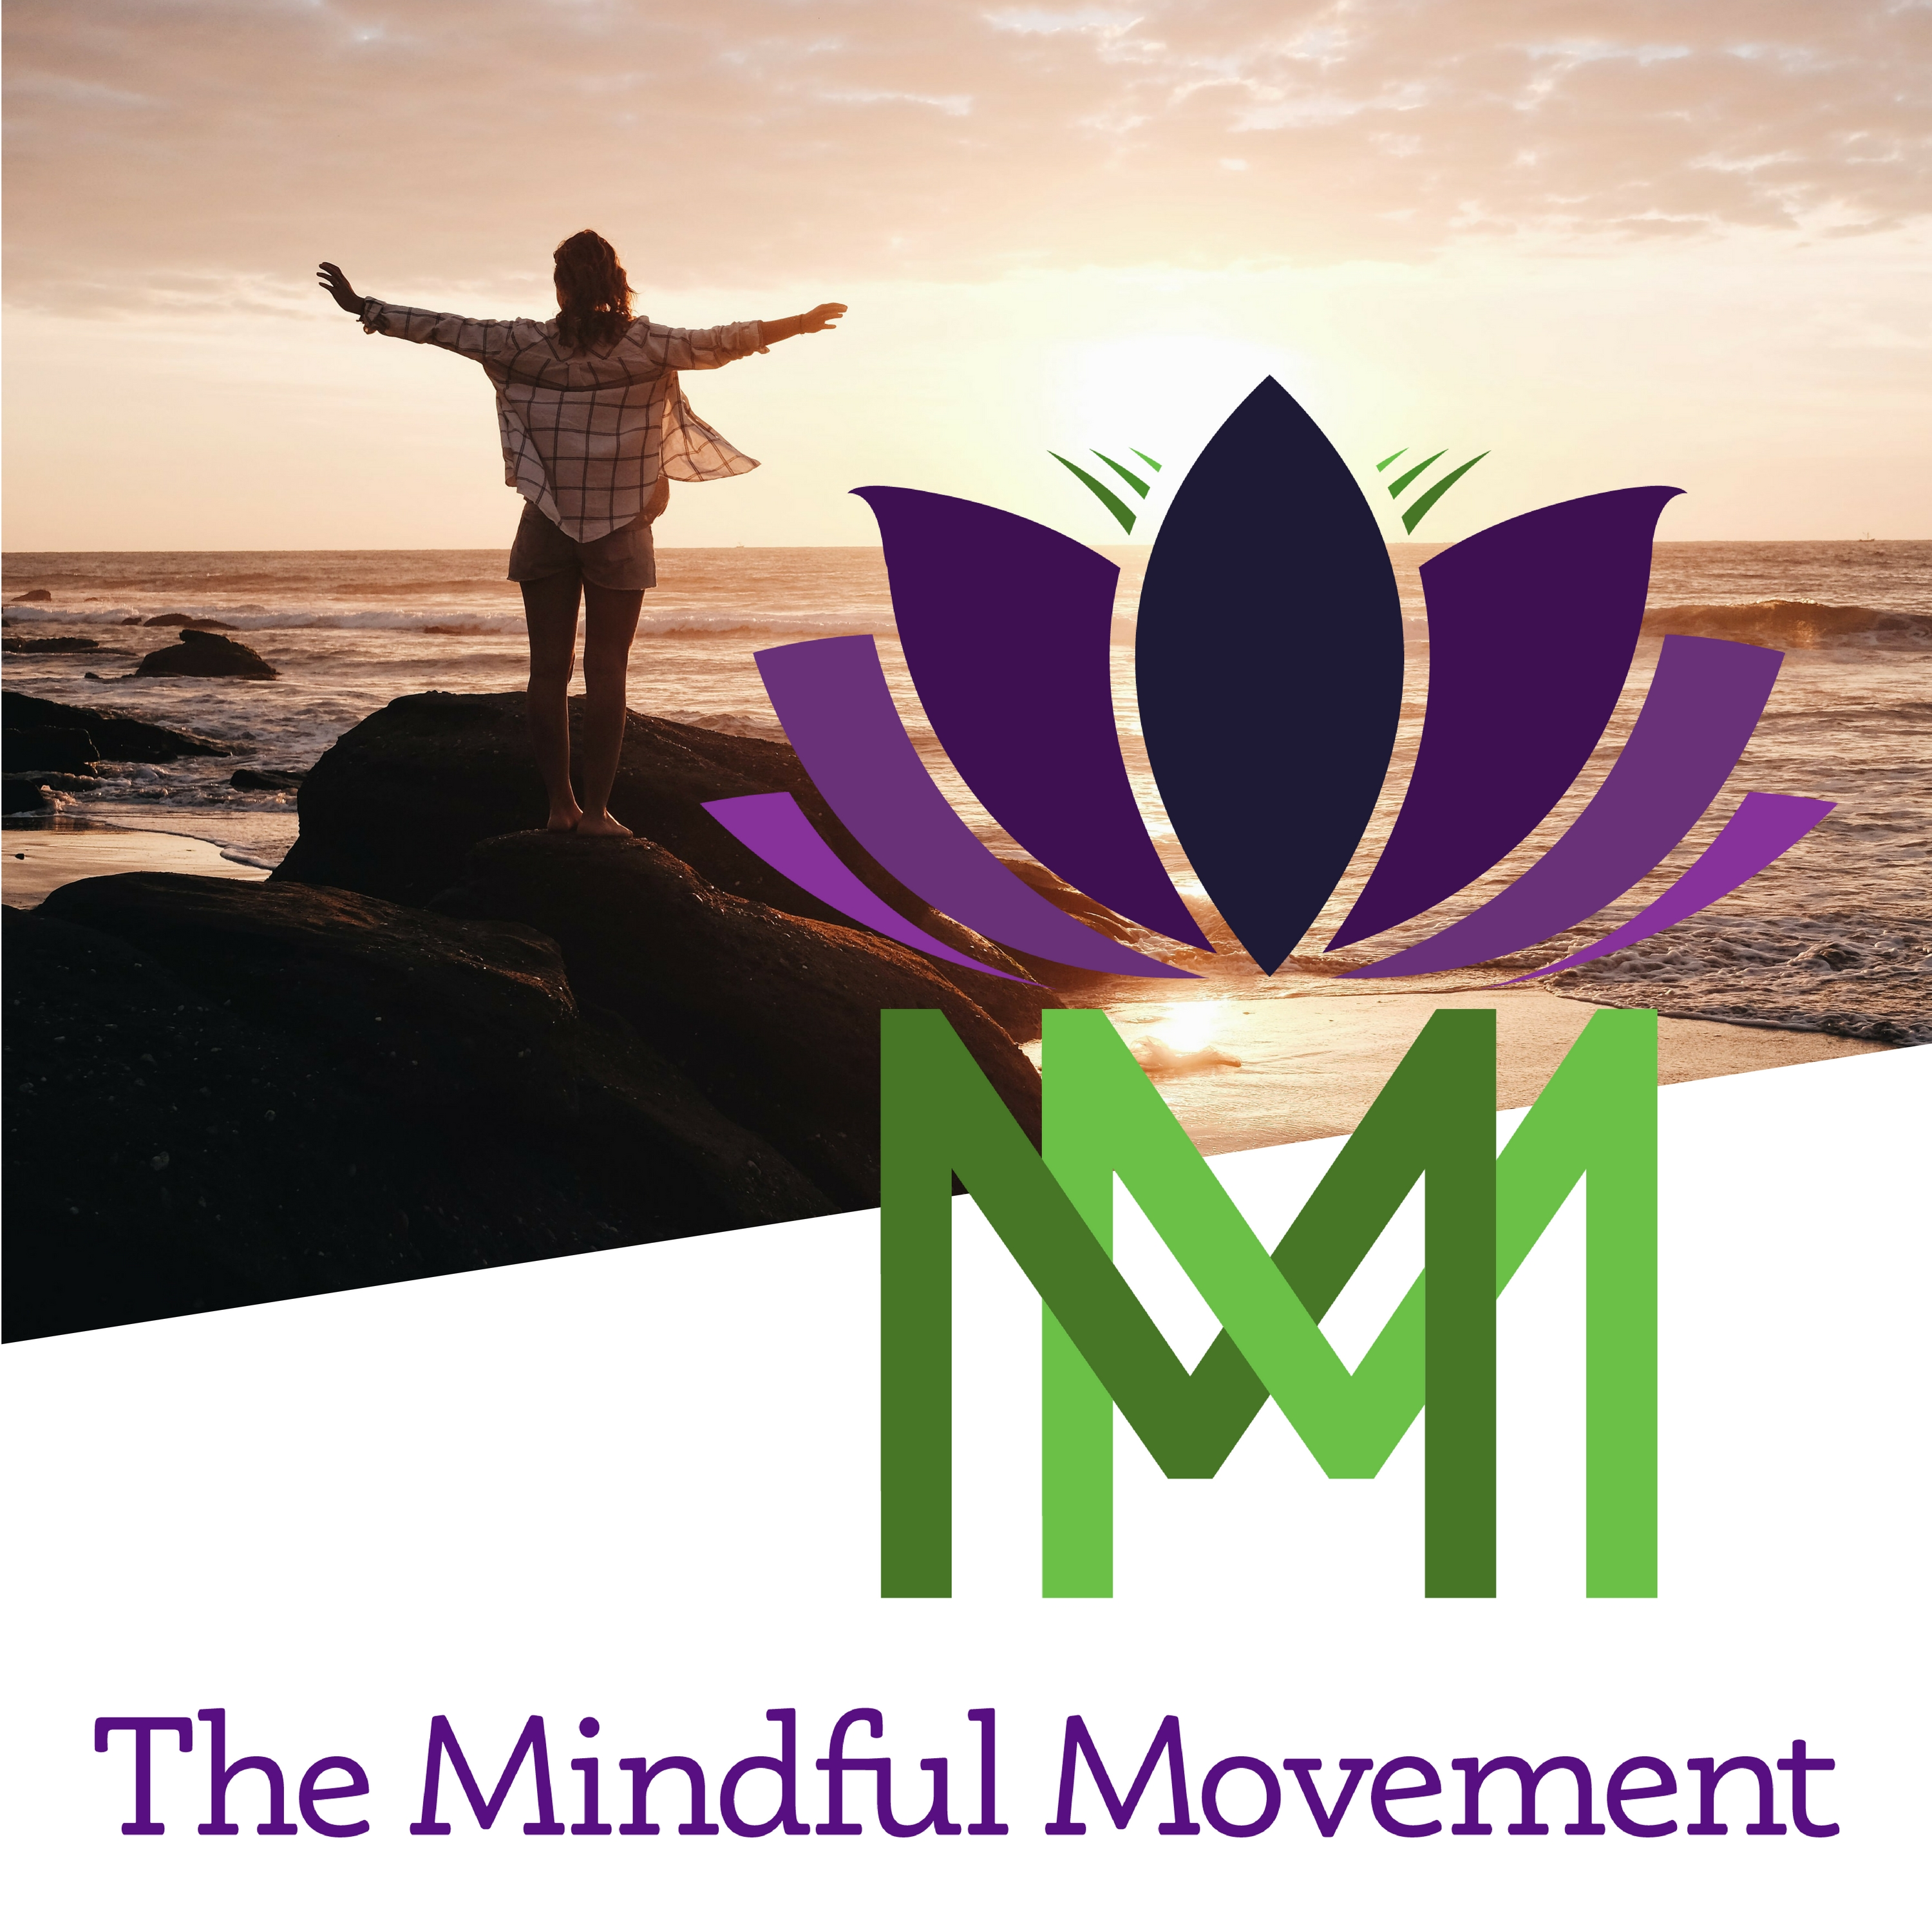 Artwork for podcast The Mindful Movement Podcast and Community